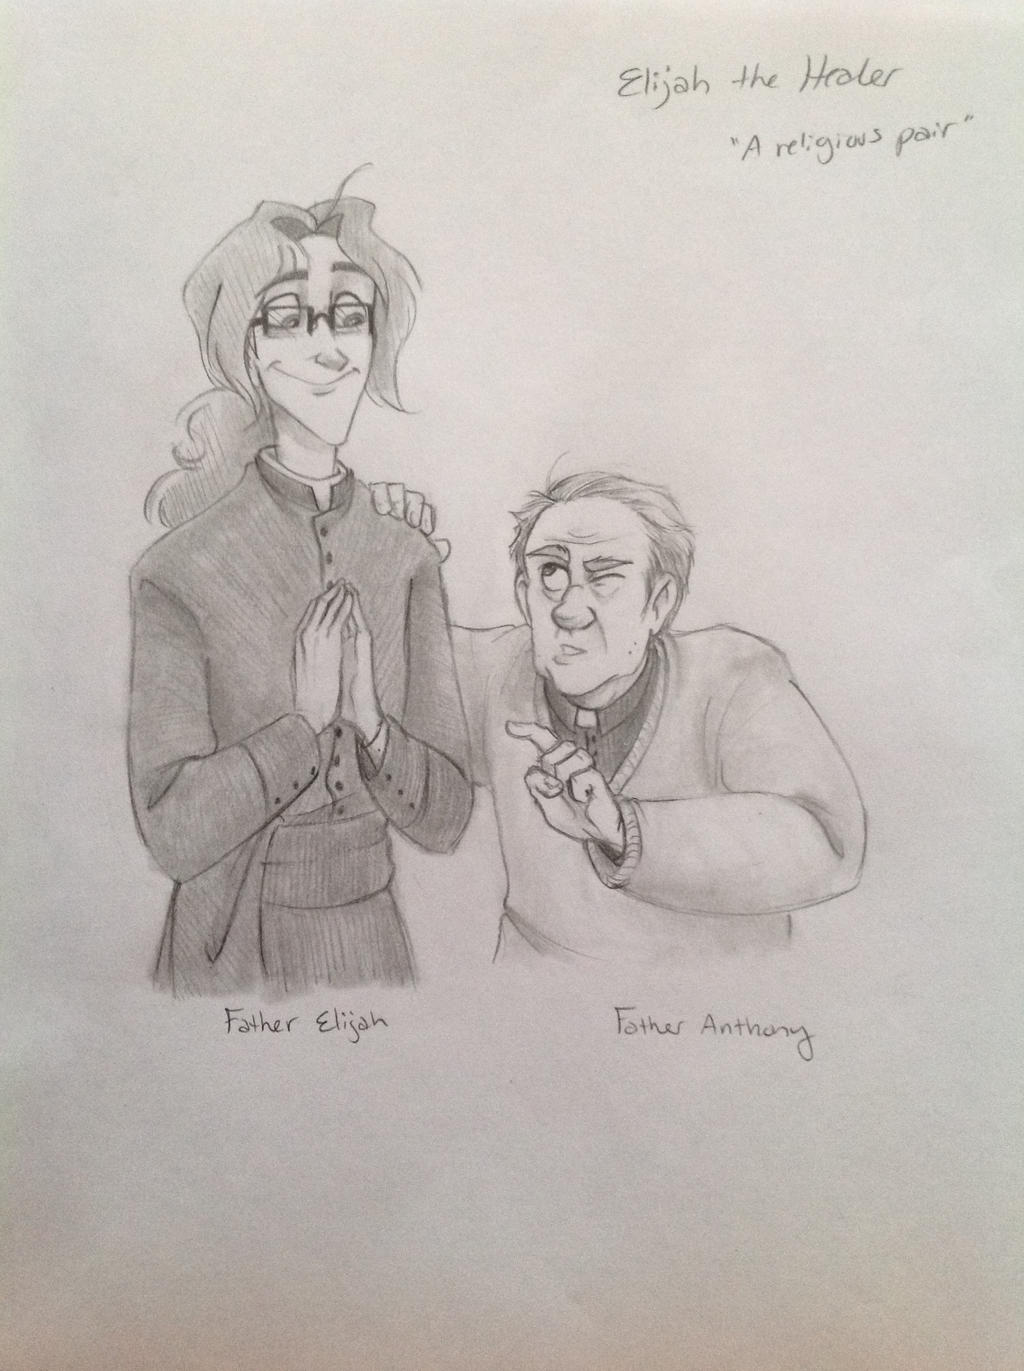 A religious pair by Chrissyissypoo19